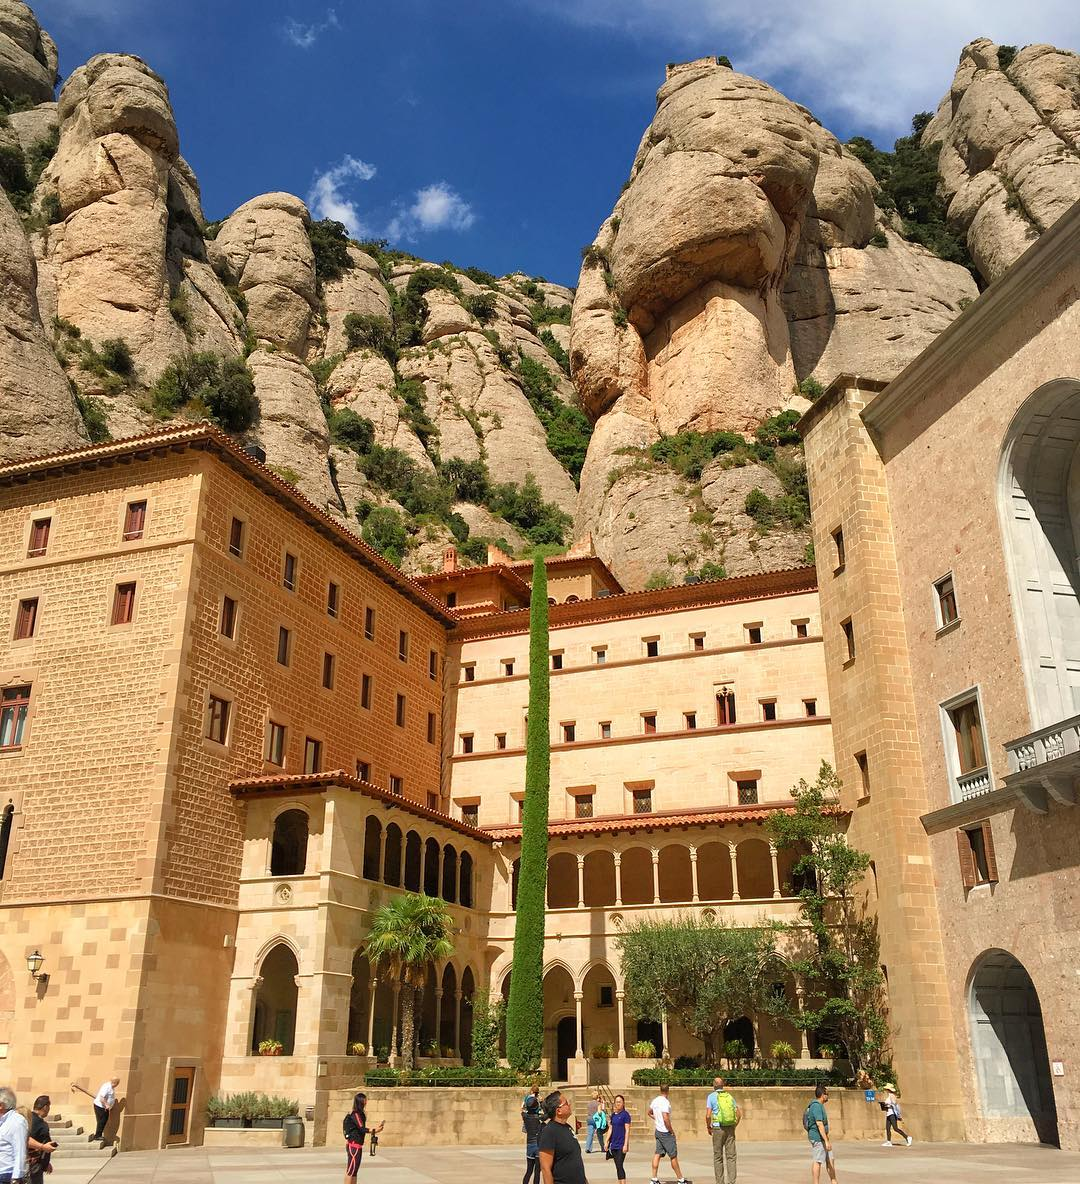 A few photos I took in Montserrat